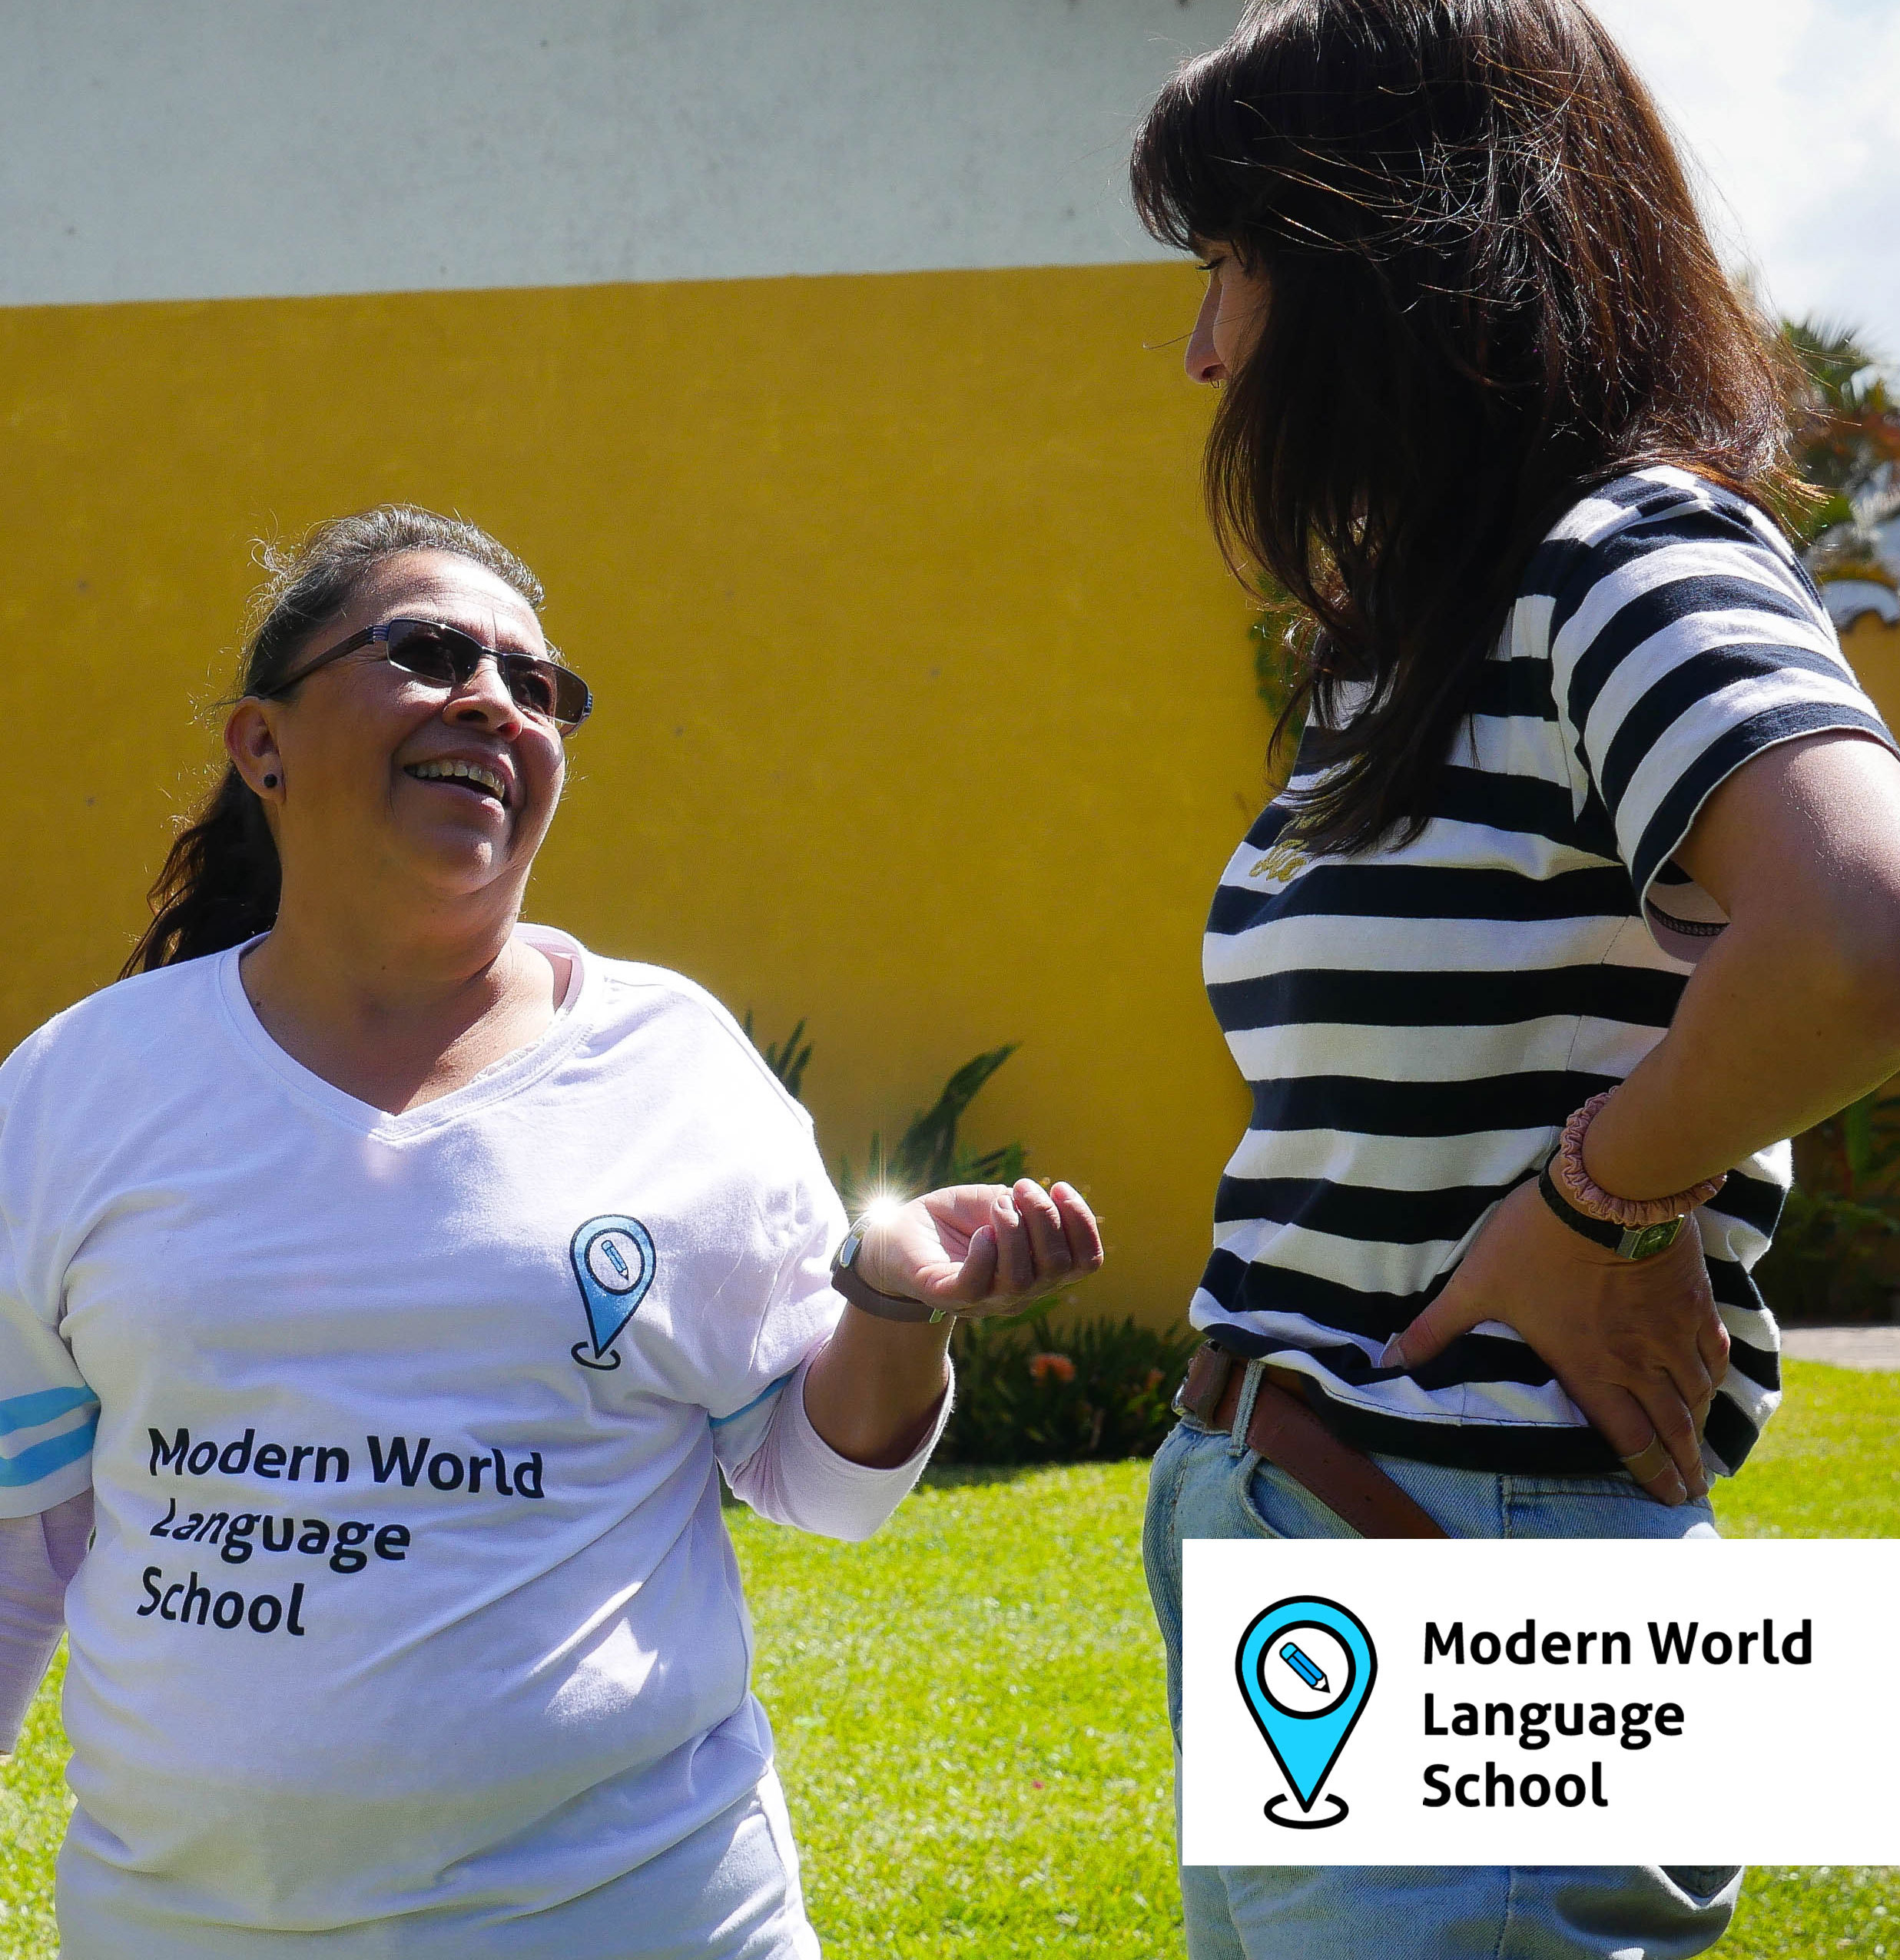 One week Spanish classes in Antigua